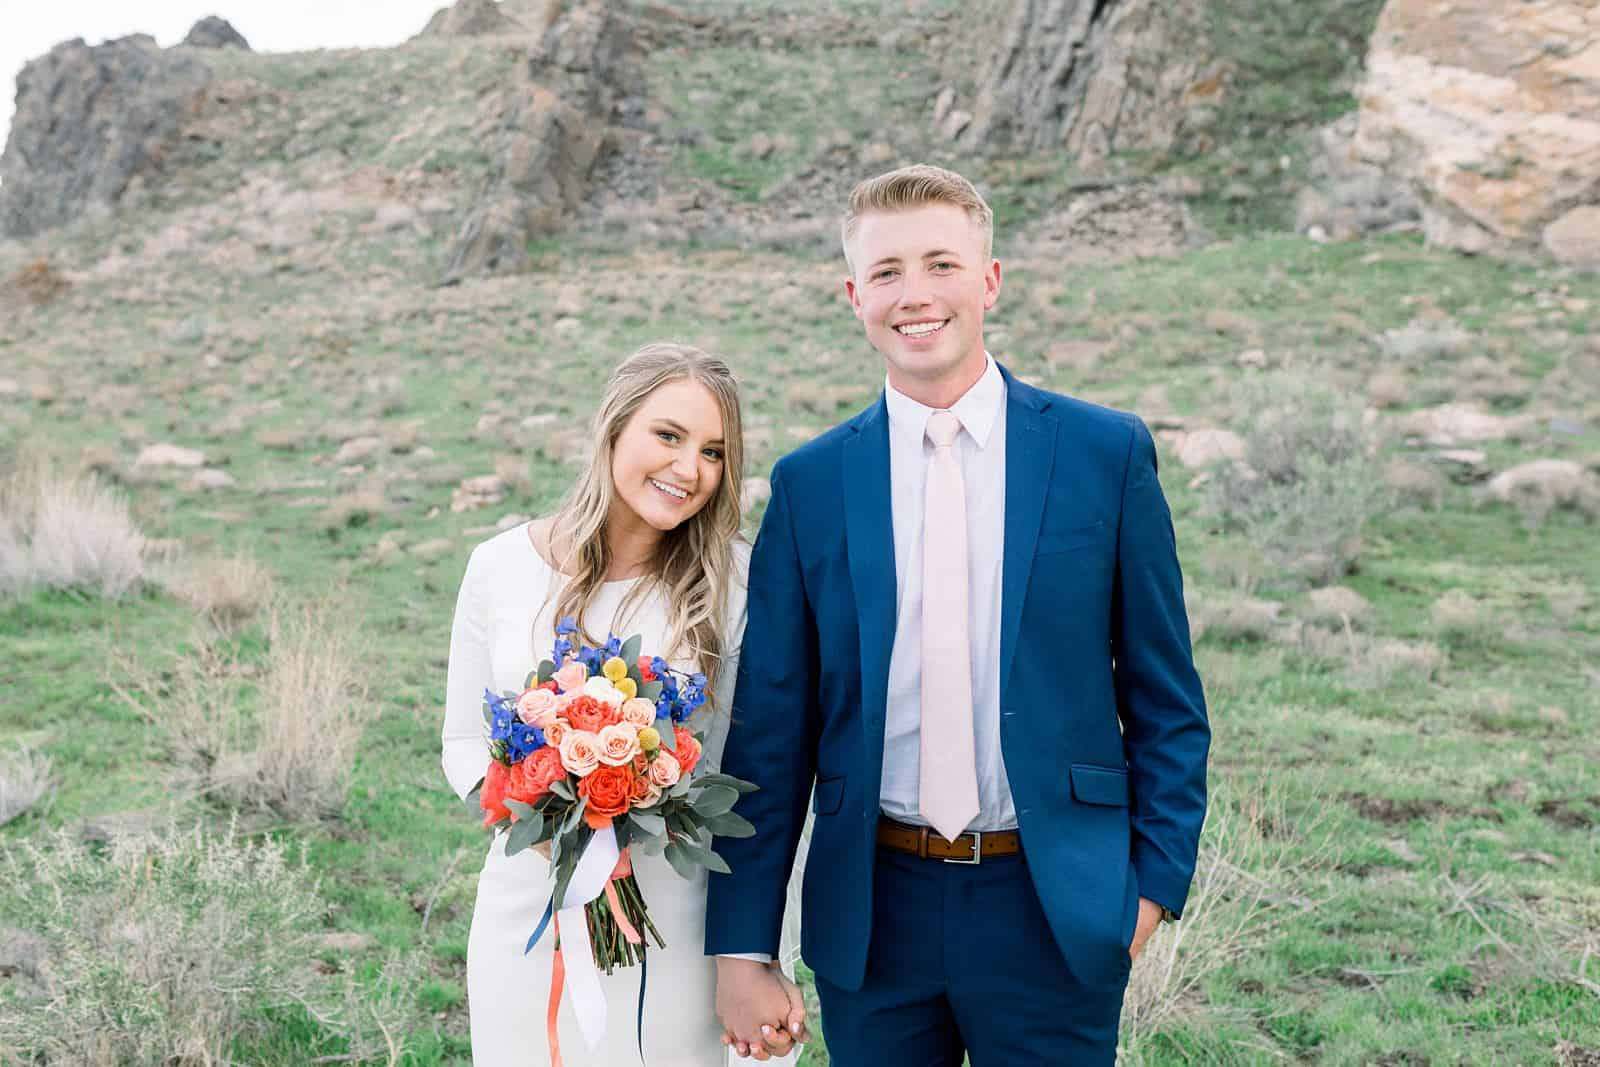 colorful spring flowers, wedding bouquet, Ireland field, bride and groom, Utah mountains, nature wedding photography